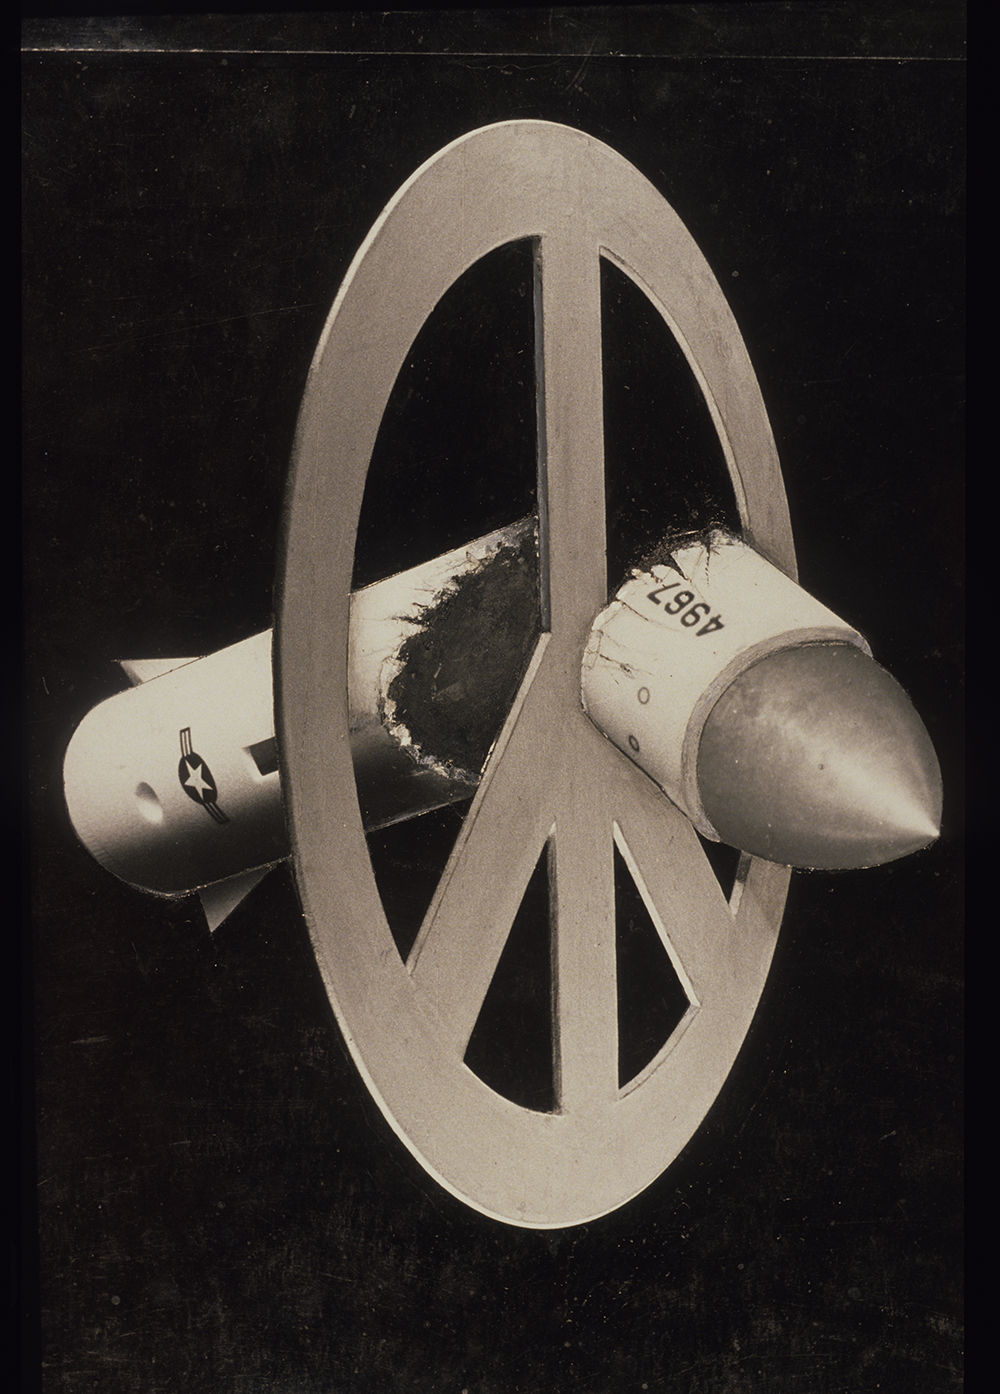 Broken Missile - PhotomontageGelatin silver prints,gouache and ink on card1980First published:Poster for Campaign for NuclearDisarmament, 1980Collection: TateCatalogue: PK/180